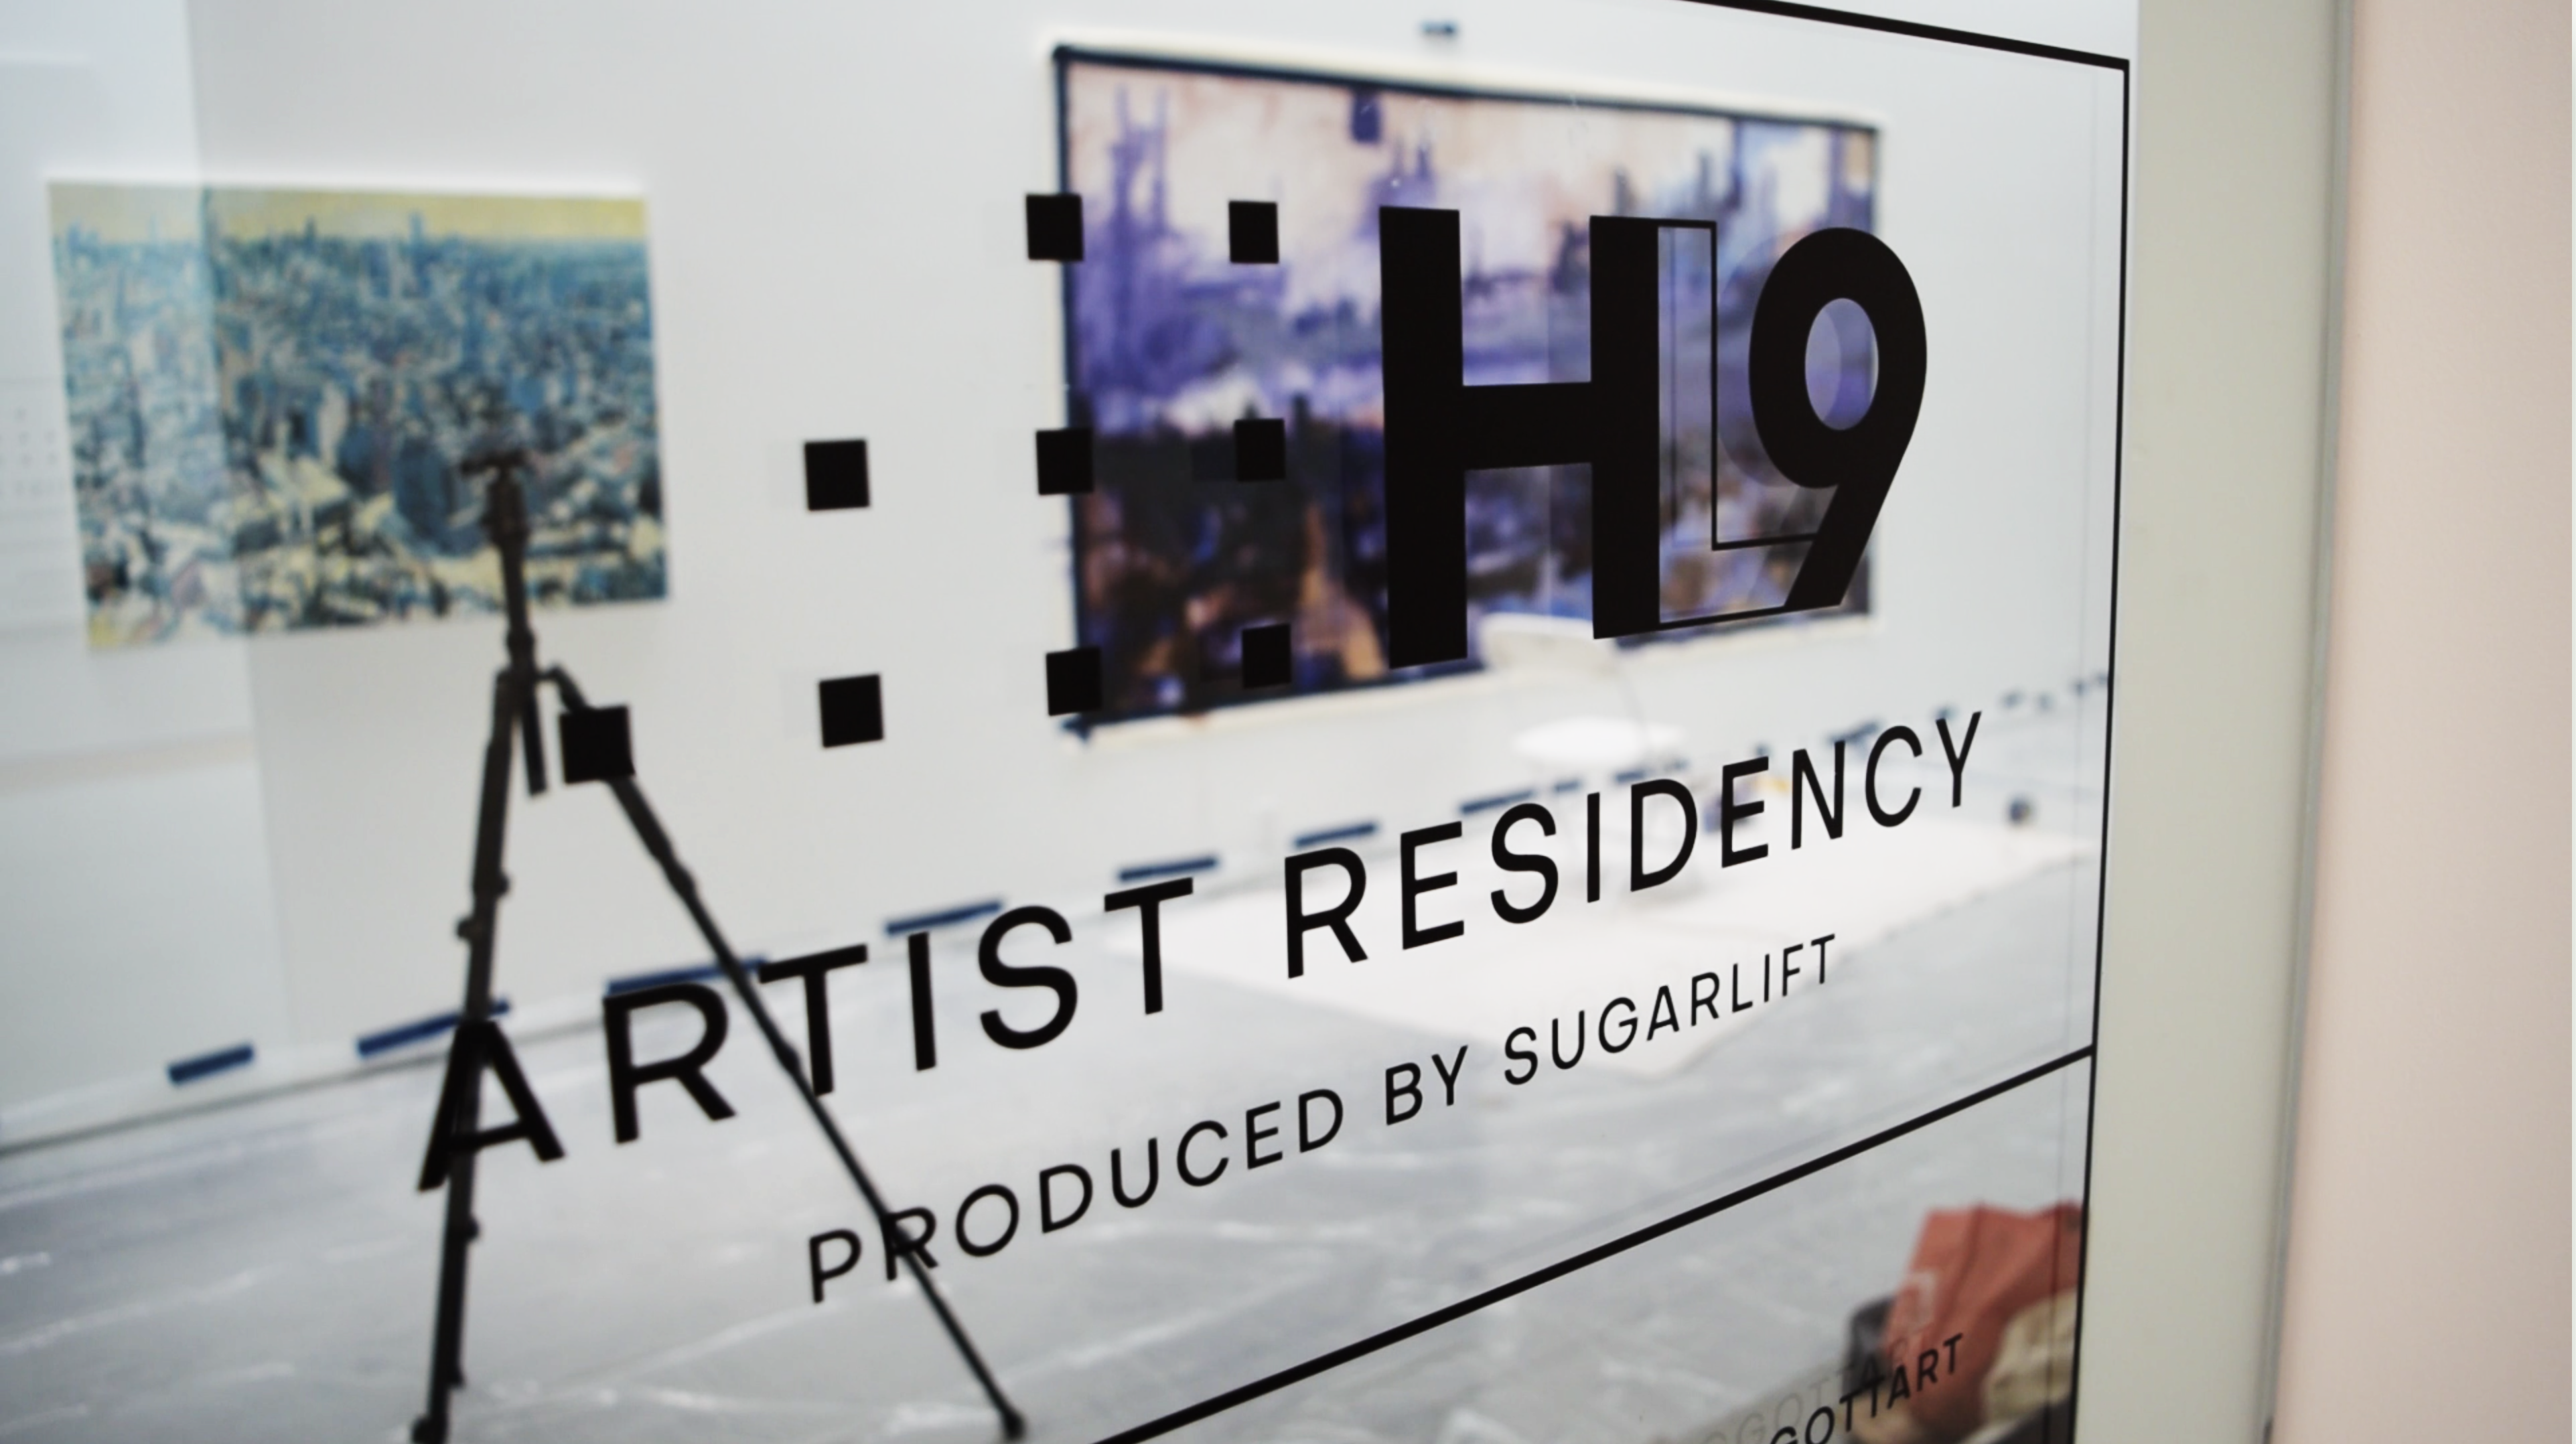 High Line Nine x Sugarlift artist residency photo by Chris Kent